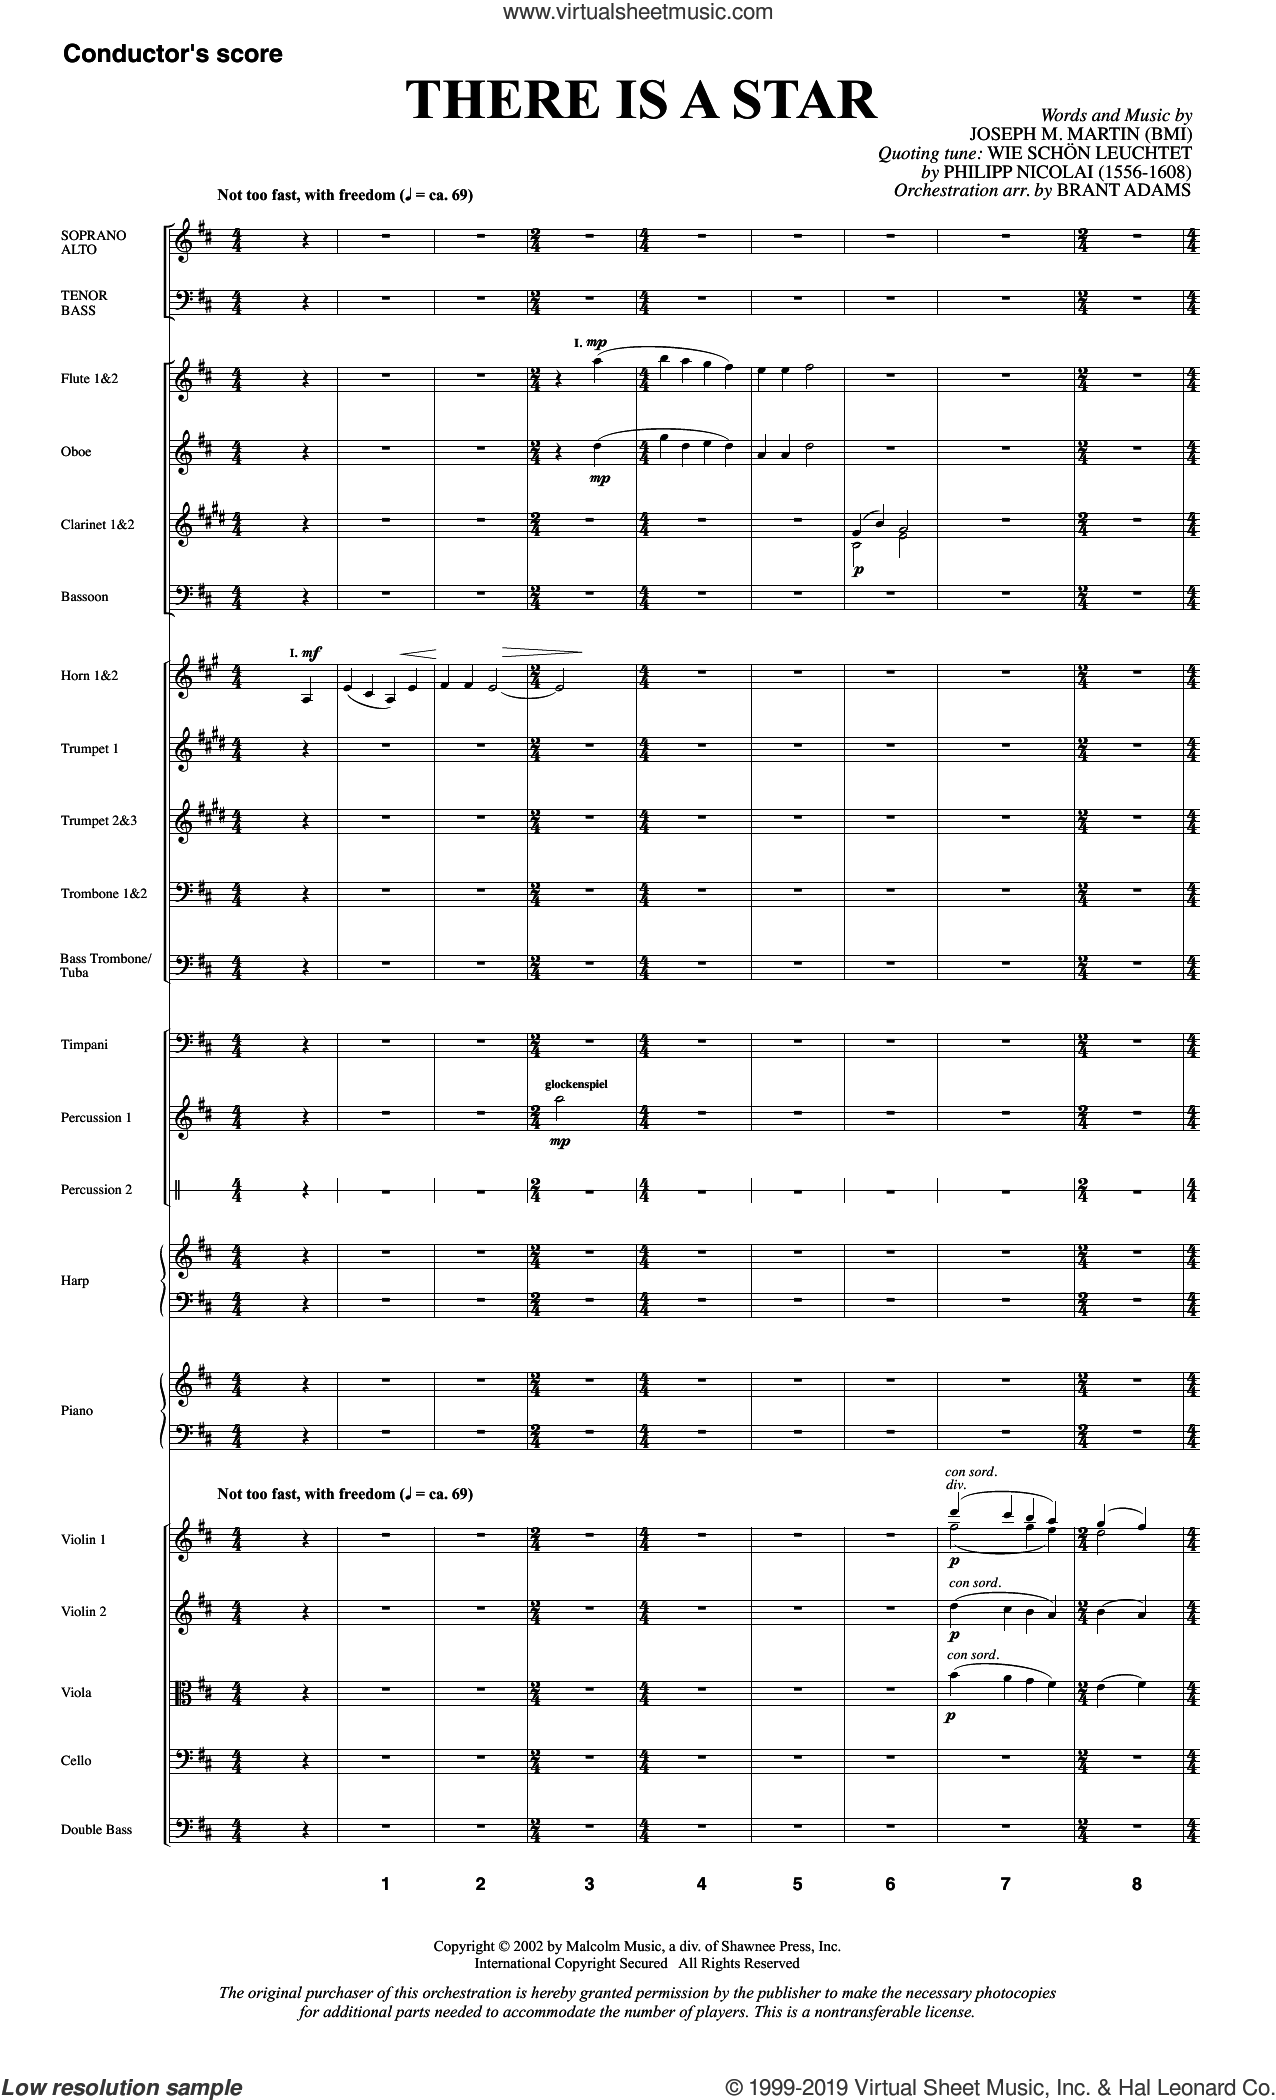 There Is a Star (COMPLETE) sheet music for orchestra/band by Joseph M. Martin, intermediate skill level